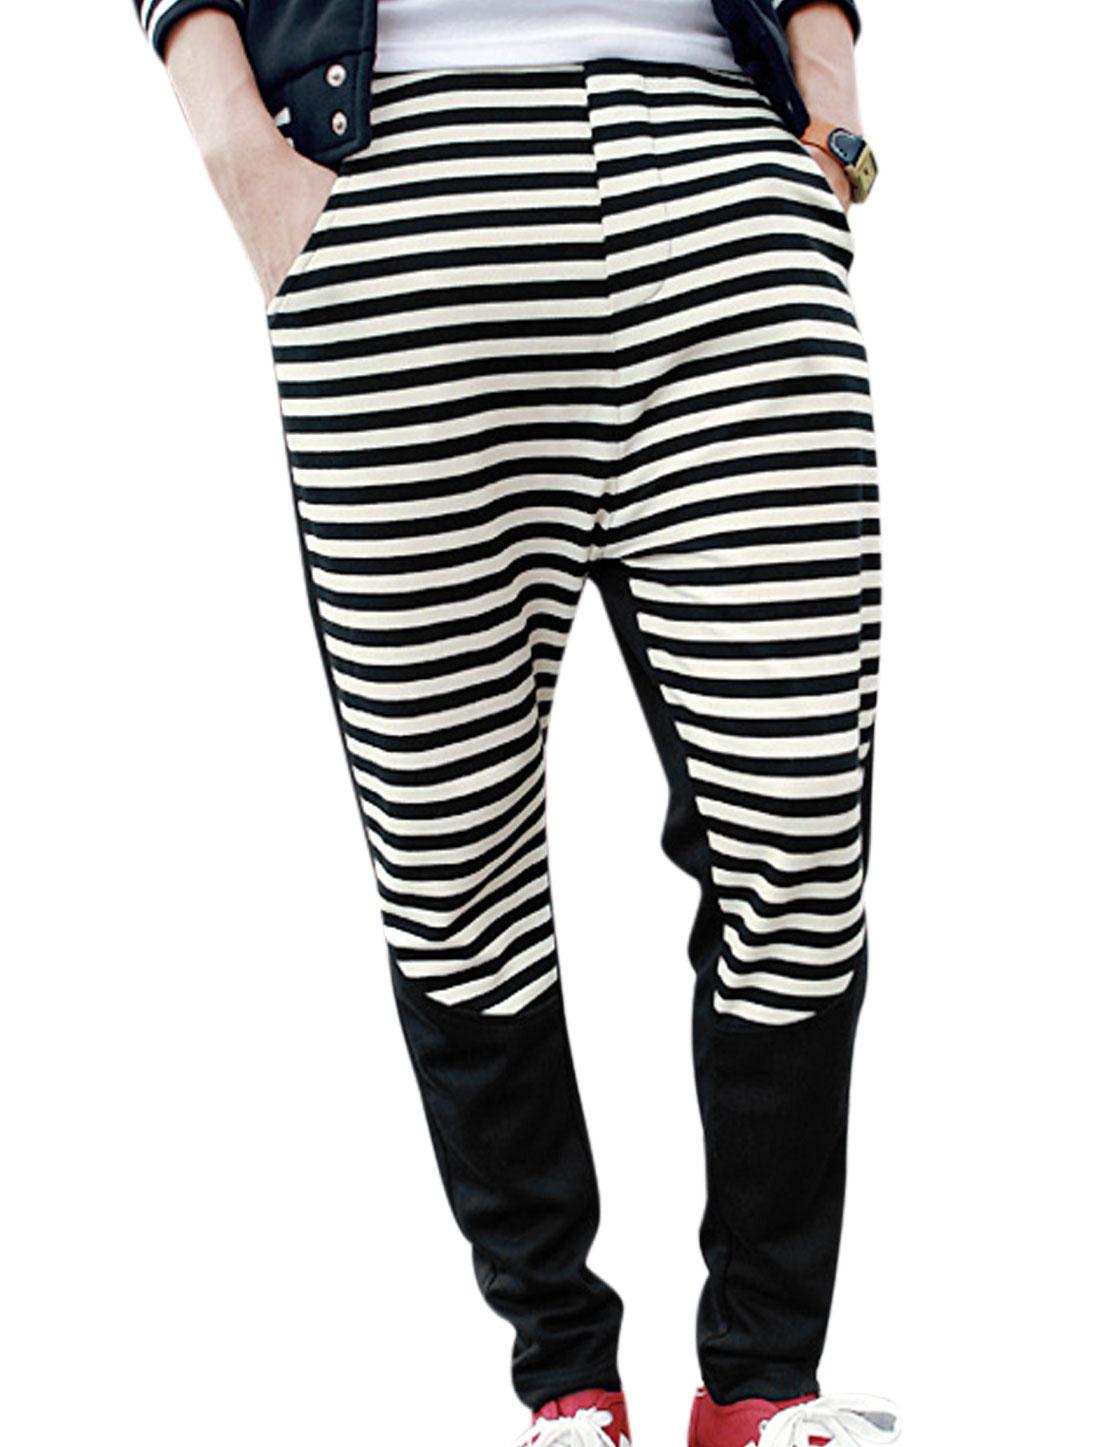 Men Fake Pockets Back Decor Stripes Panel Design Casual Pants Black W30